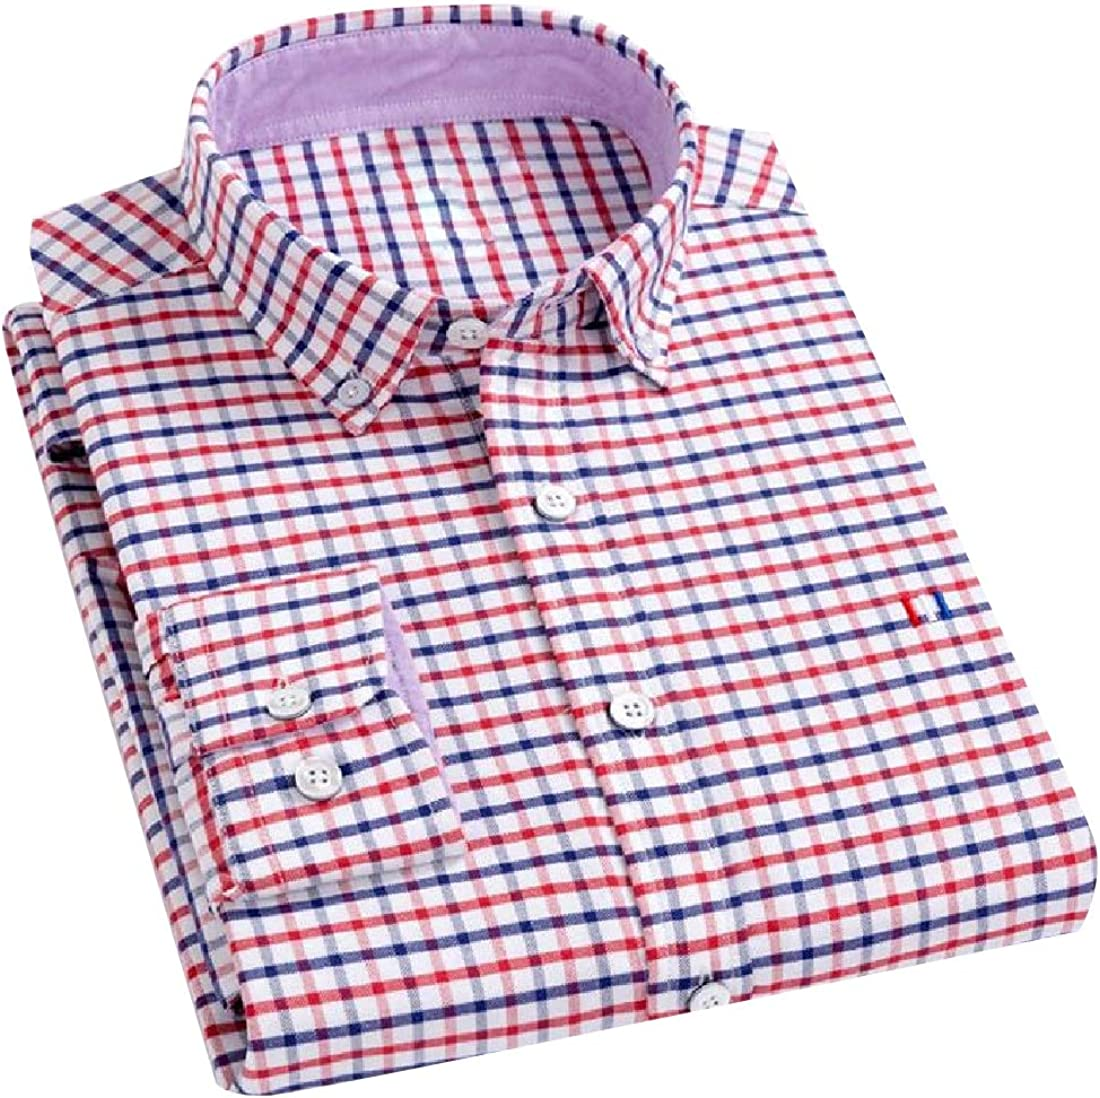 Abetteric Men Business Vintage Wash Relaxed Fit Long Sleeve Button Shirt